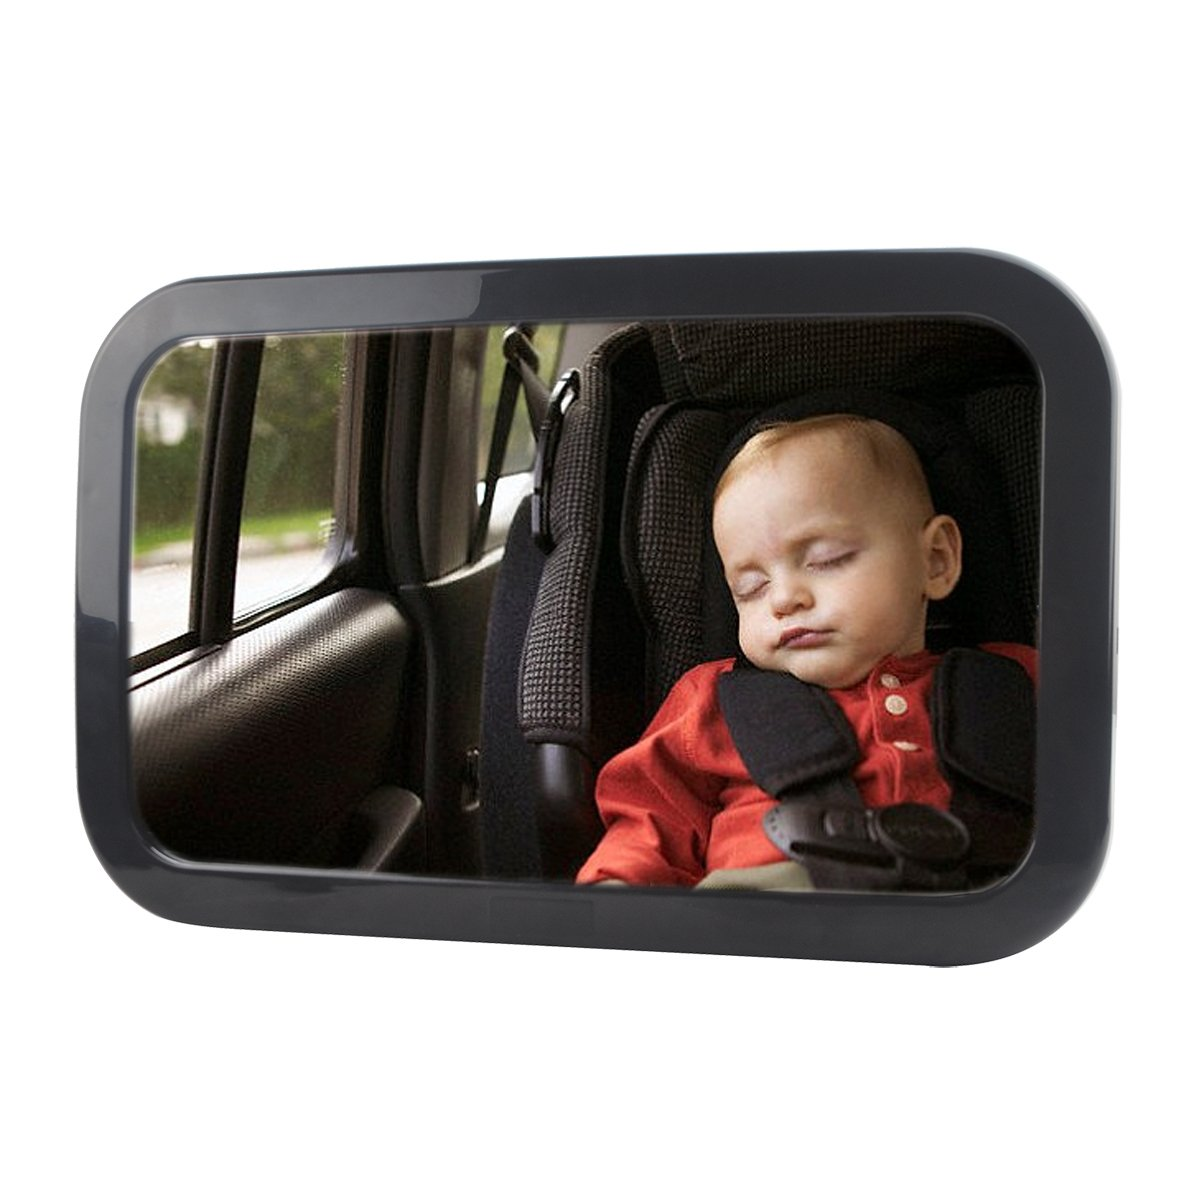 Destric Backseat Mirror For Baby, Universal Adjustable 360 Infant Rear View Car Seat Mirror by Wide Convex Necessary Safety Accessories Shatterproof Matte and Secure Double-Strap (11.87.40.9)